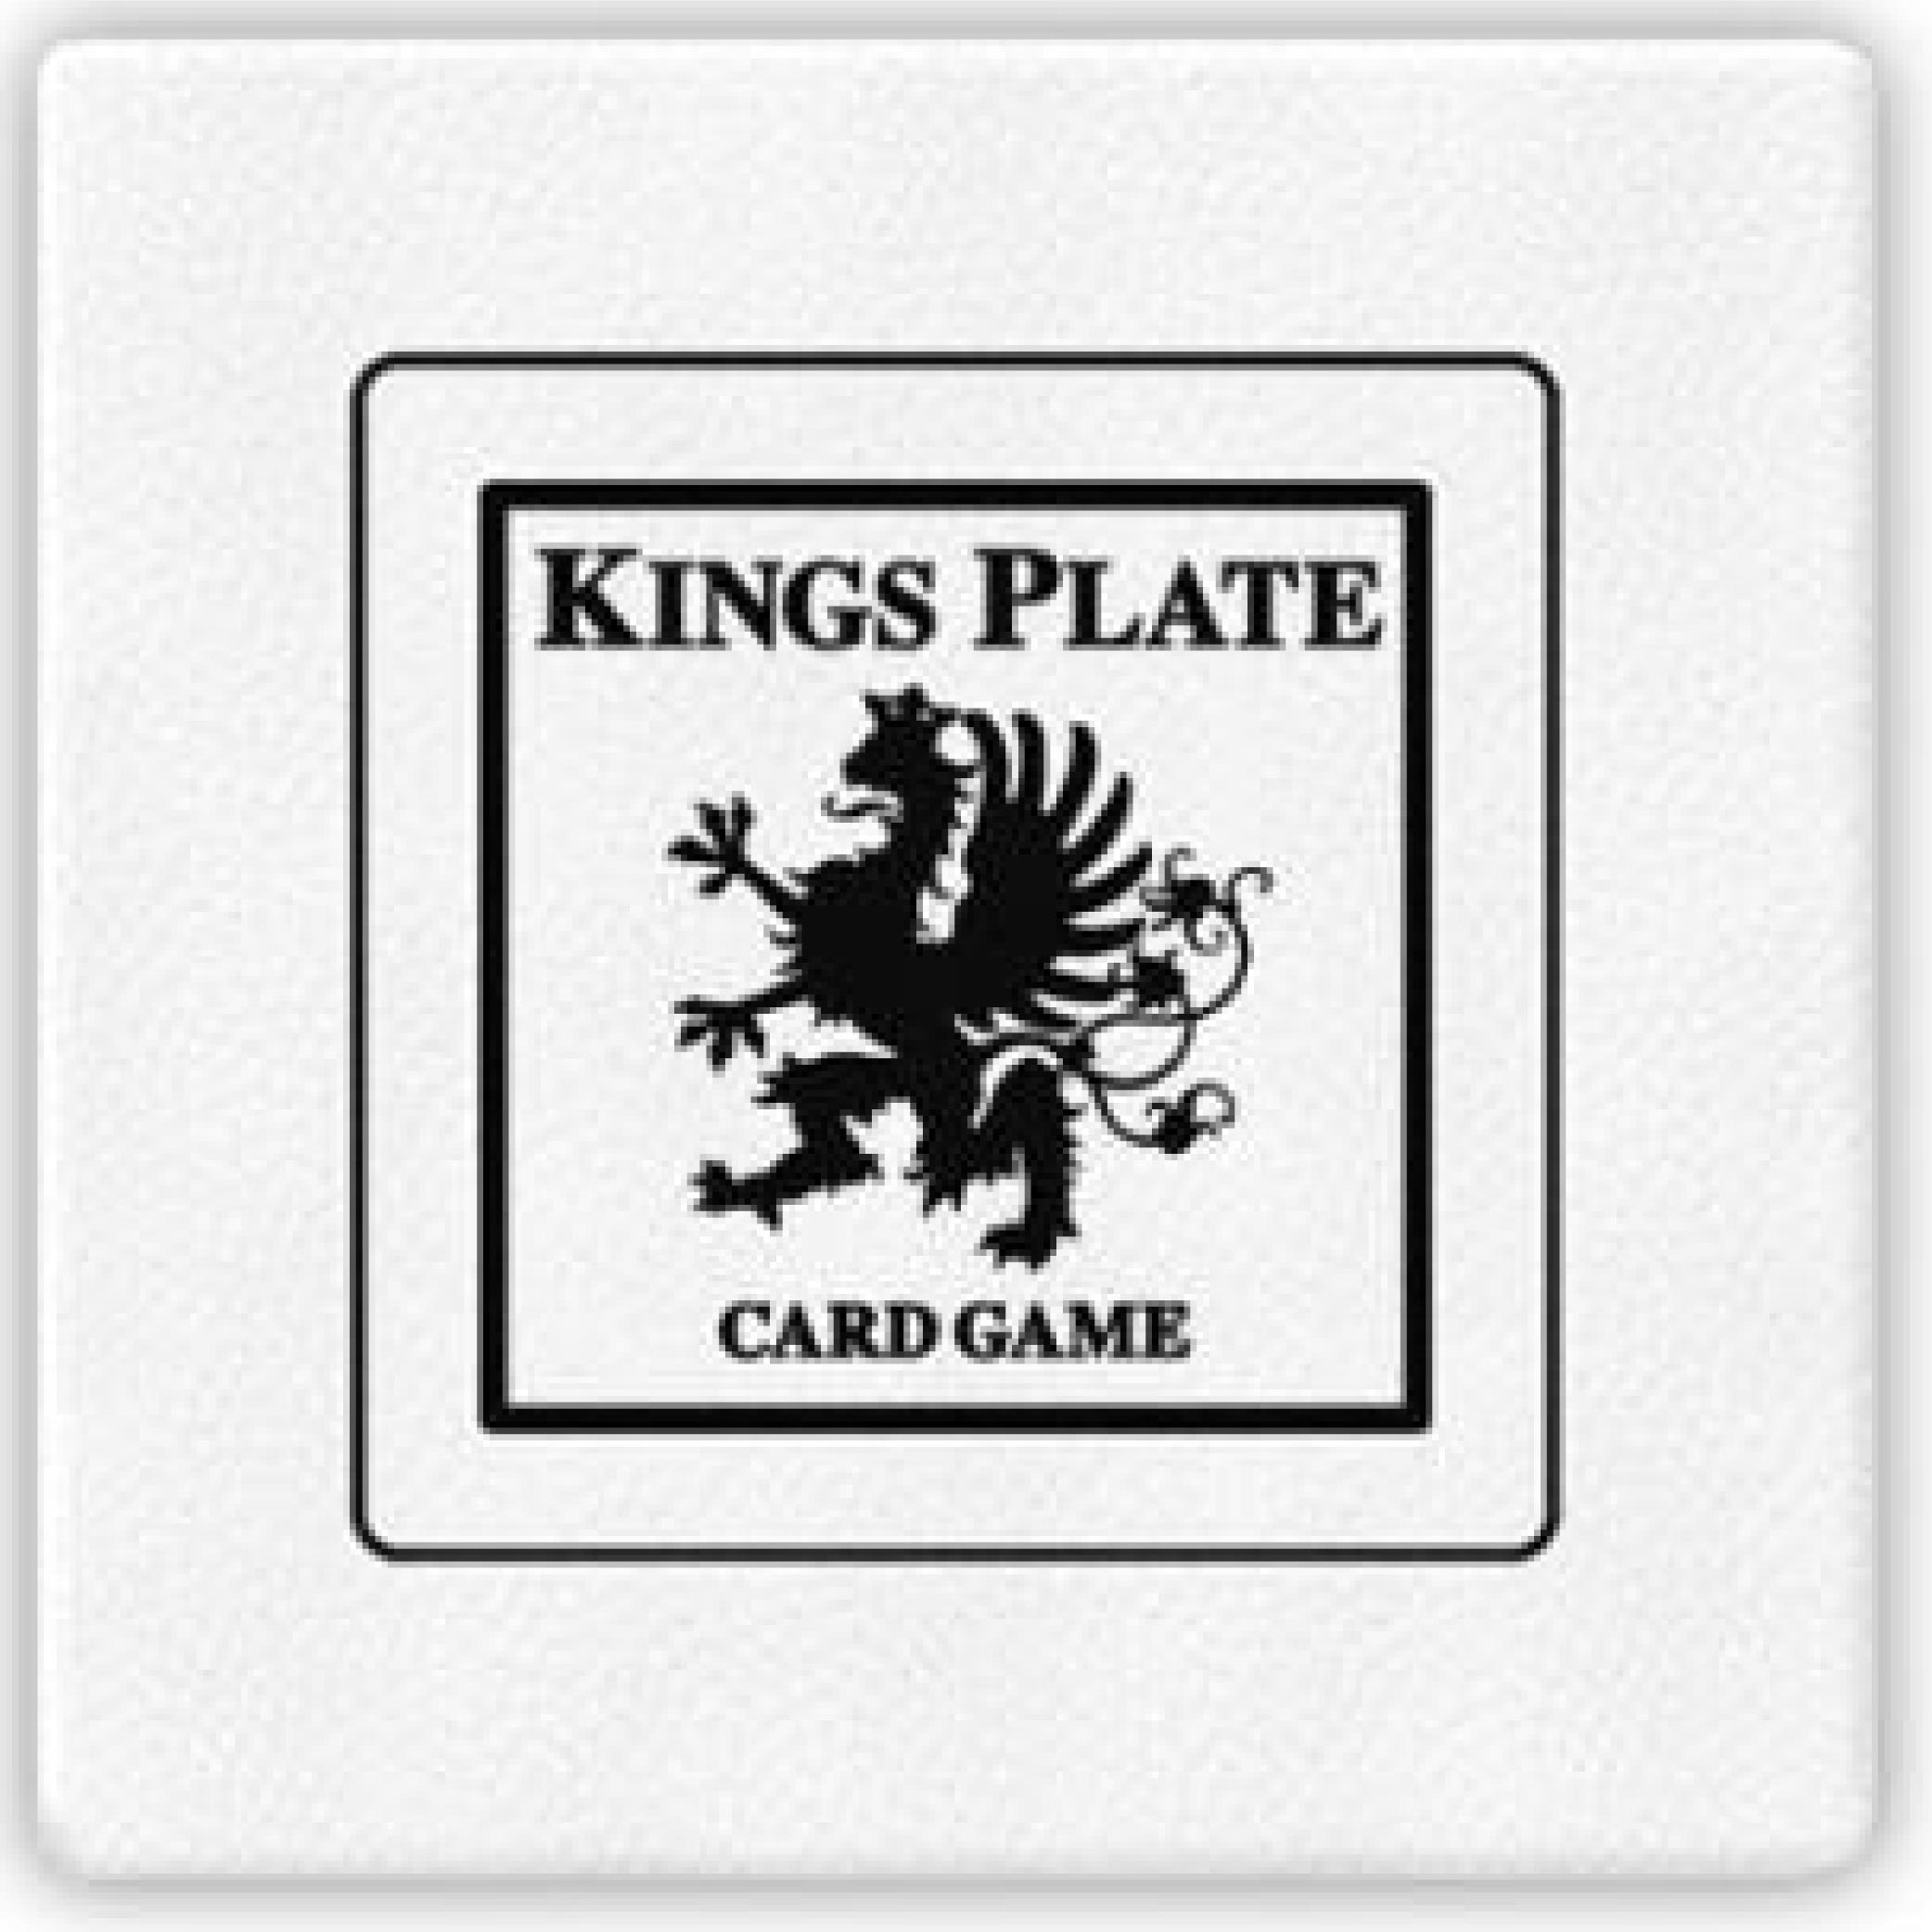 Kings_Plate__Car_50c59c9d40d5c.jpg